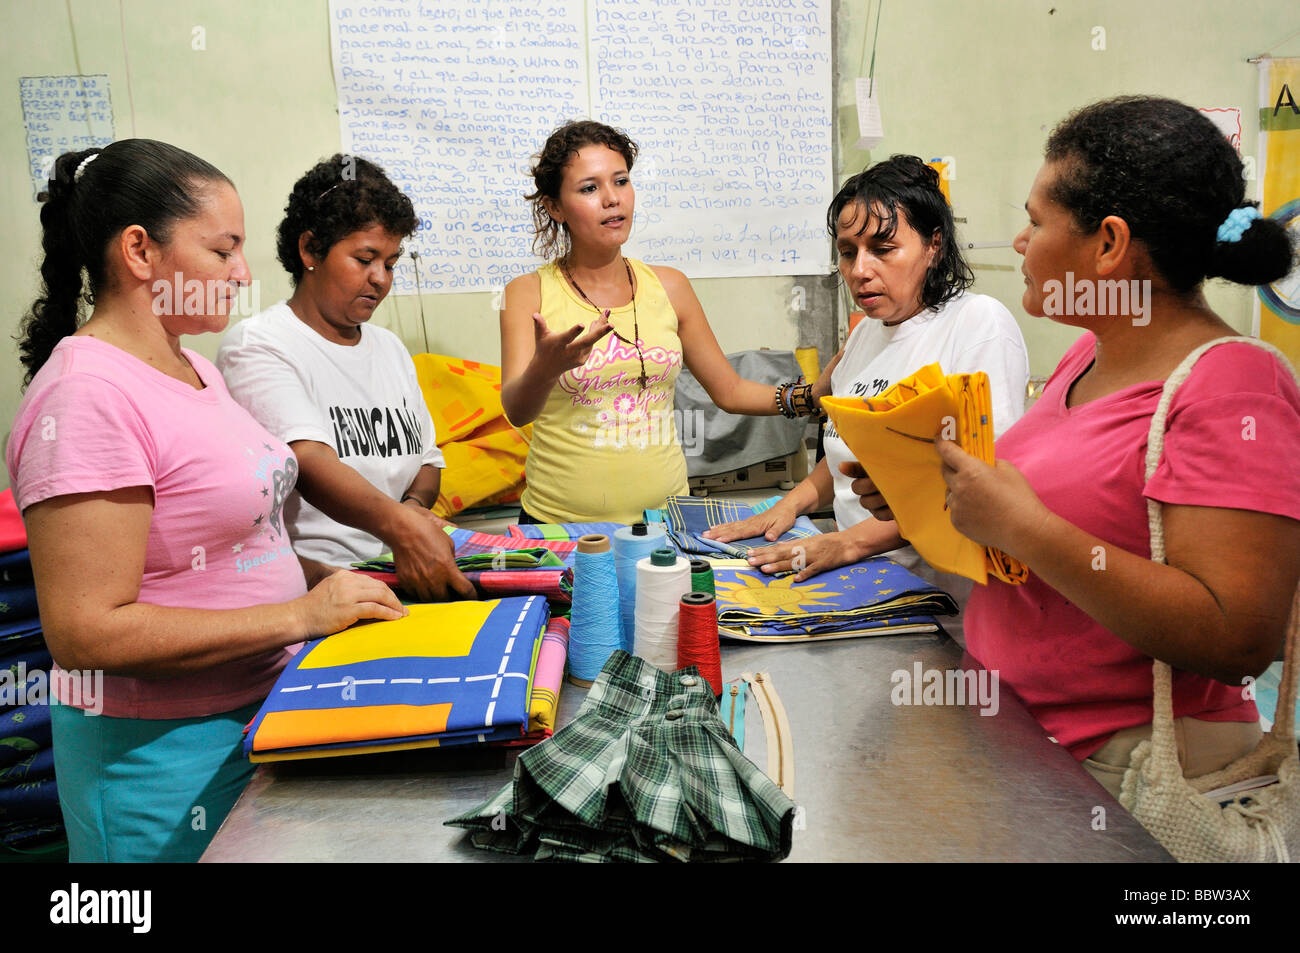 Seamstresses organised in a Cooperative association in La Dorada, Colombia, South America - Stock Image